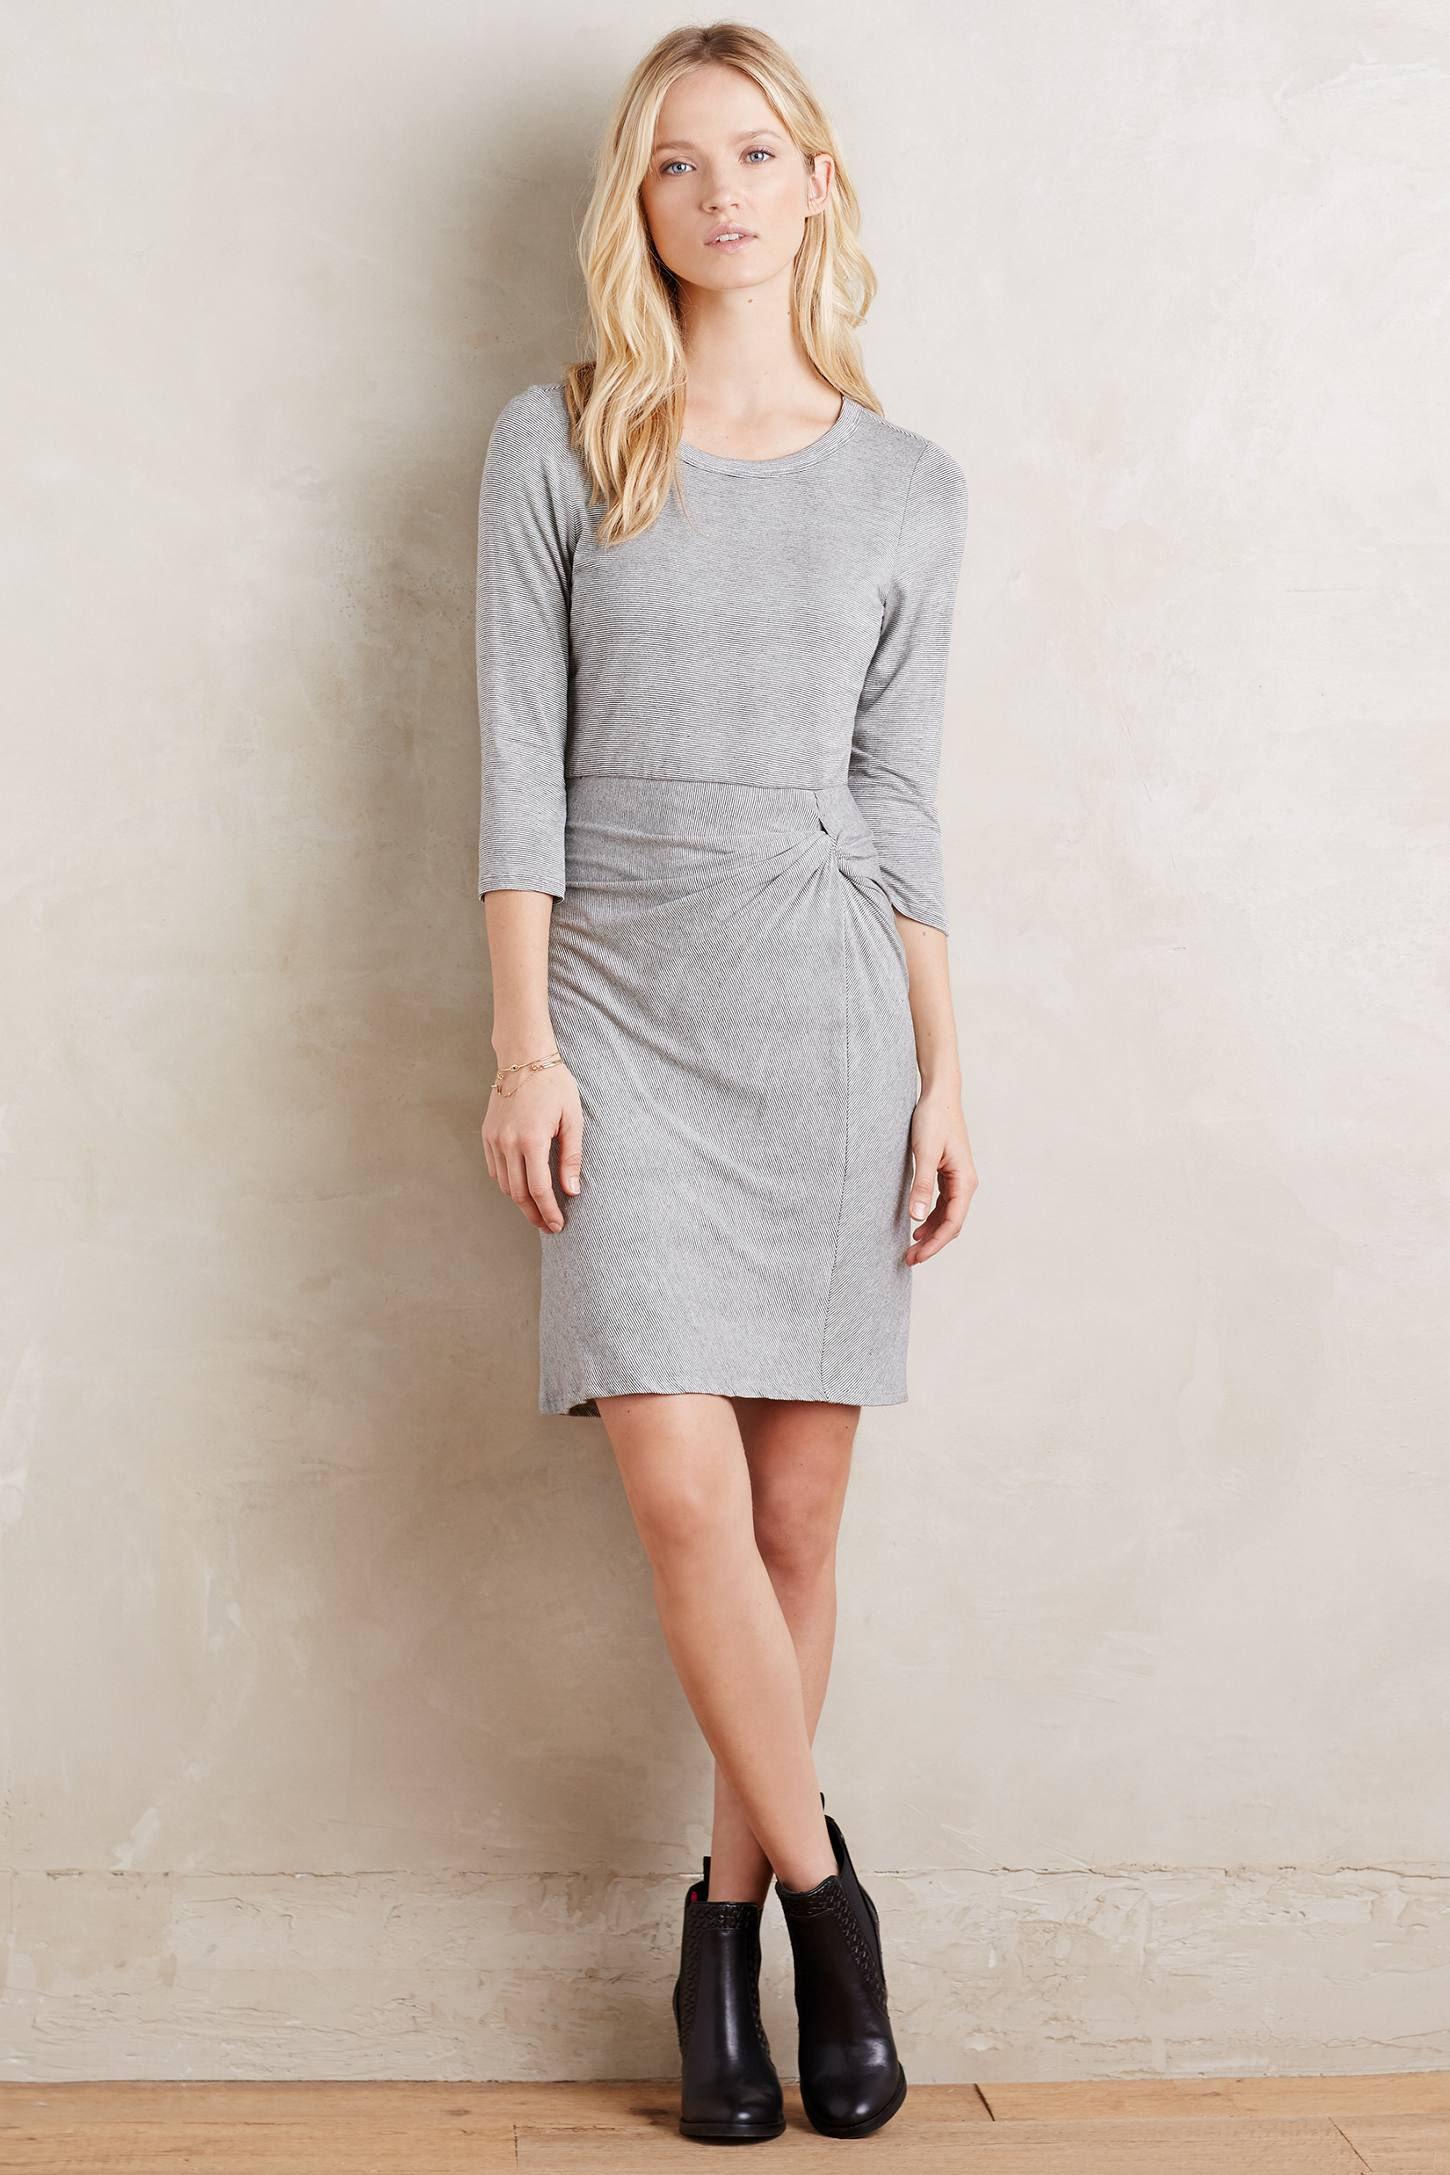 Knotted Knit Dress